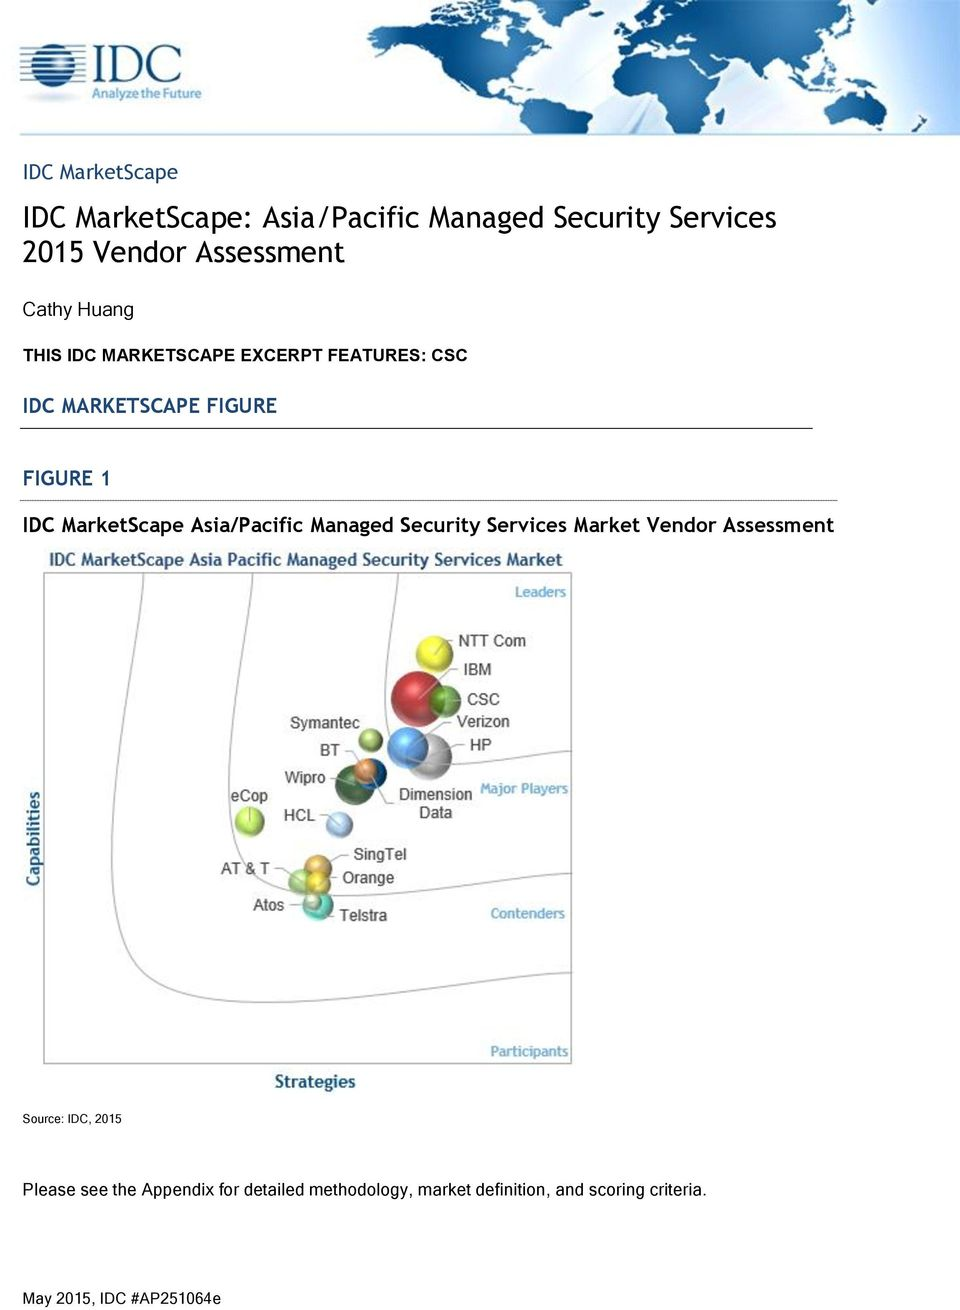 MarketScape Asia/Pacific Managed Security Services Market Vendor Assessment Source: IDC, 2015